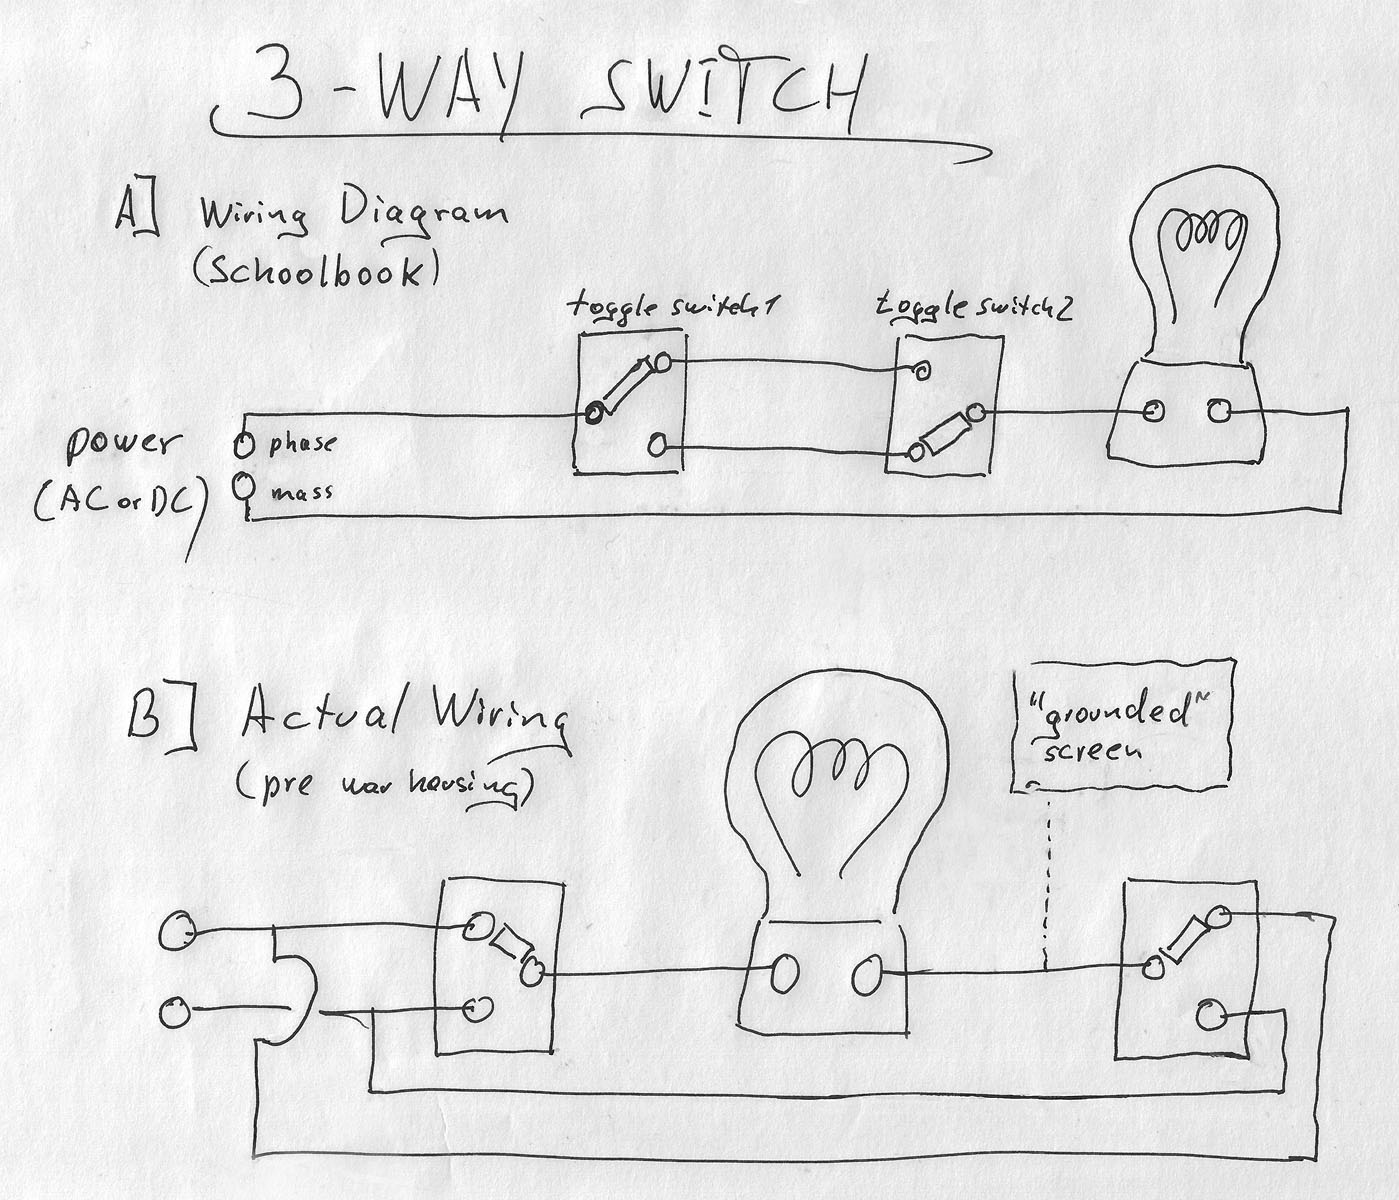 3 way switch wiring diagram power to light ladybug life cycle diagrams get free image about